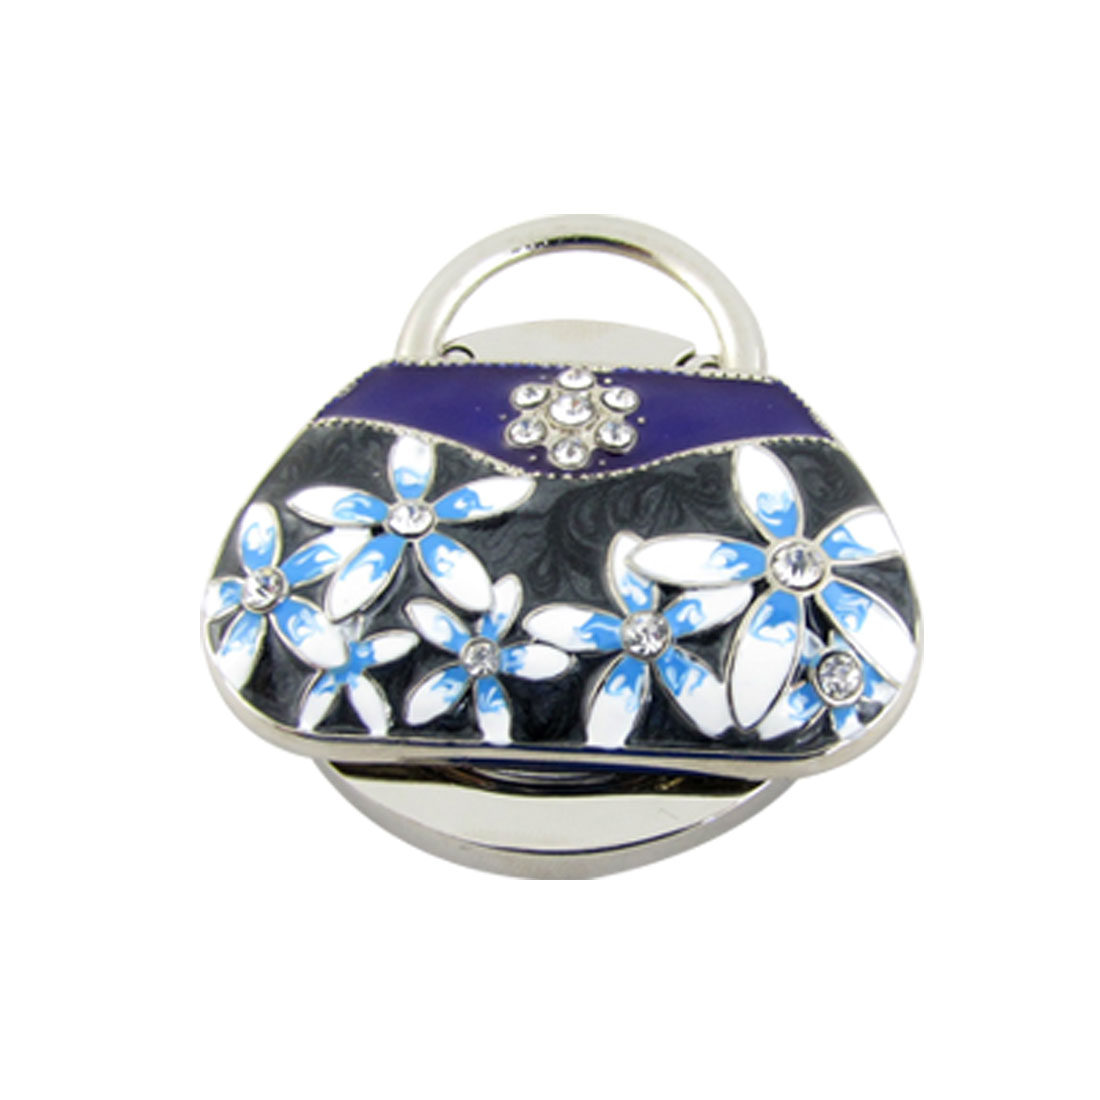 Round Rubber Base Rhinestone Accent Handbag Shaped Purse Table Hanger